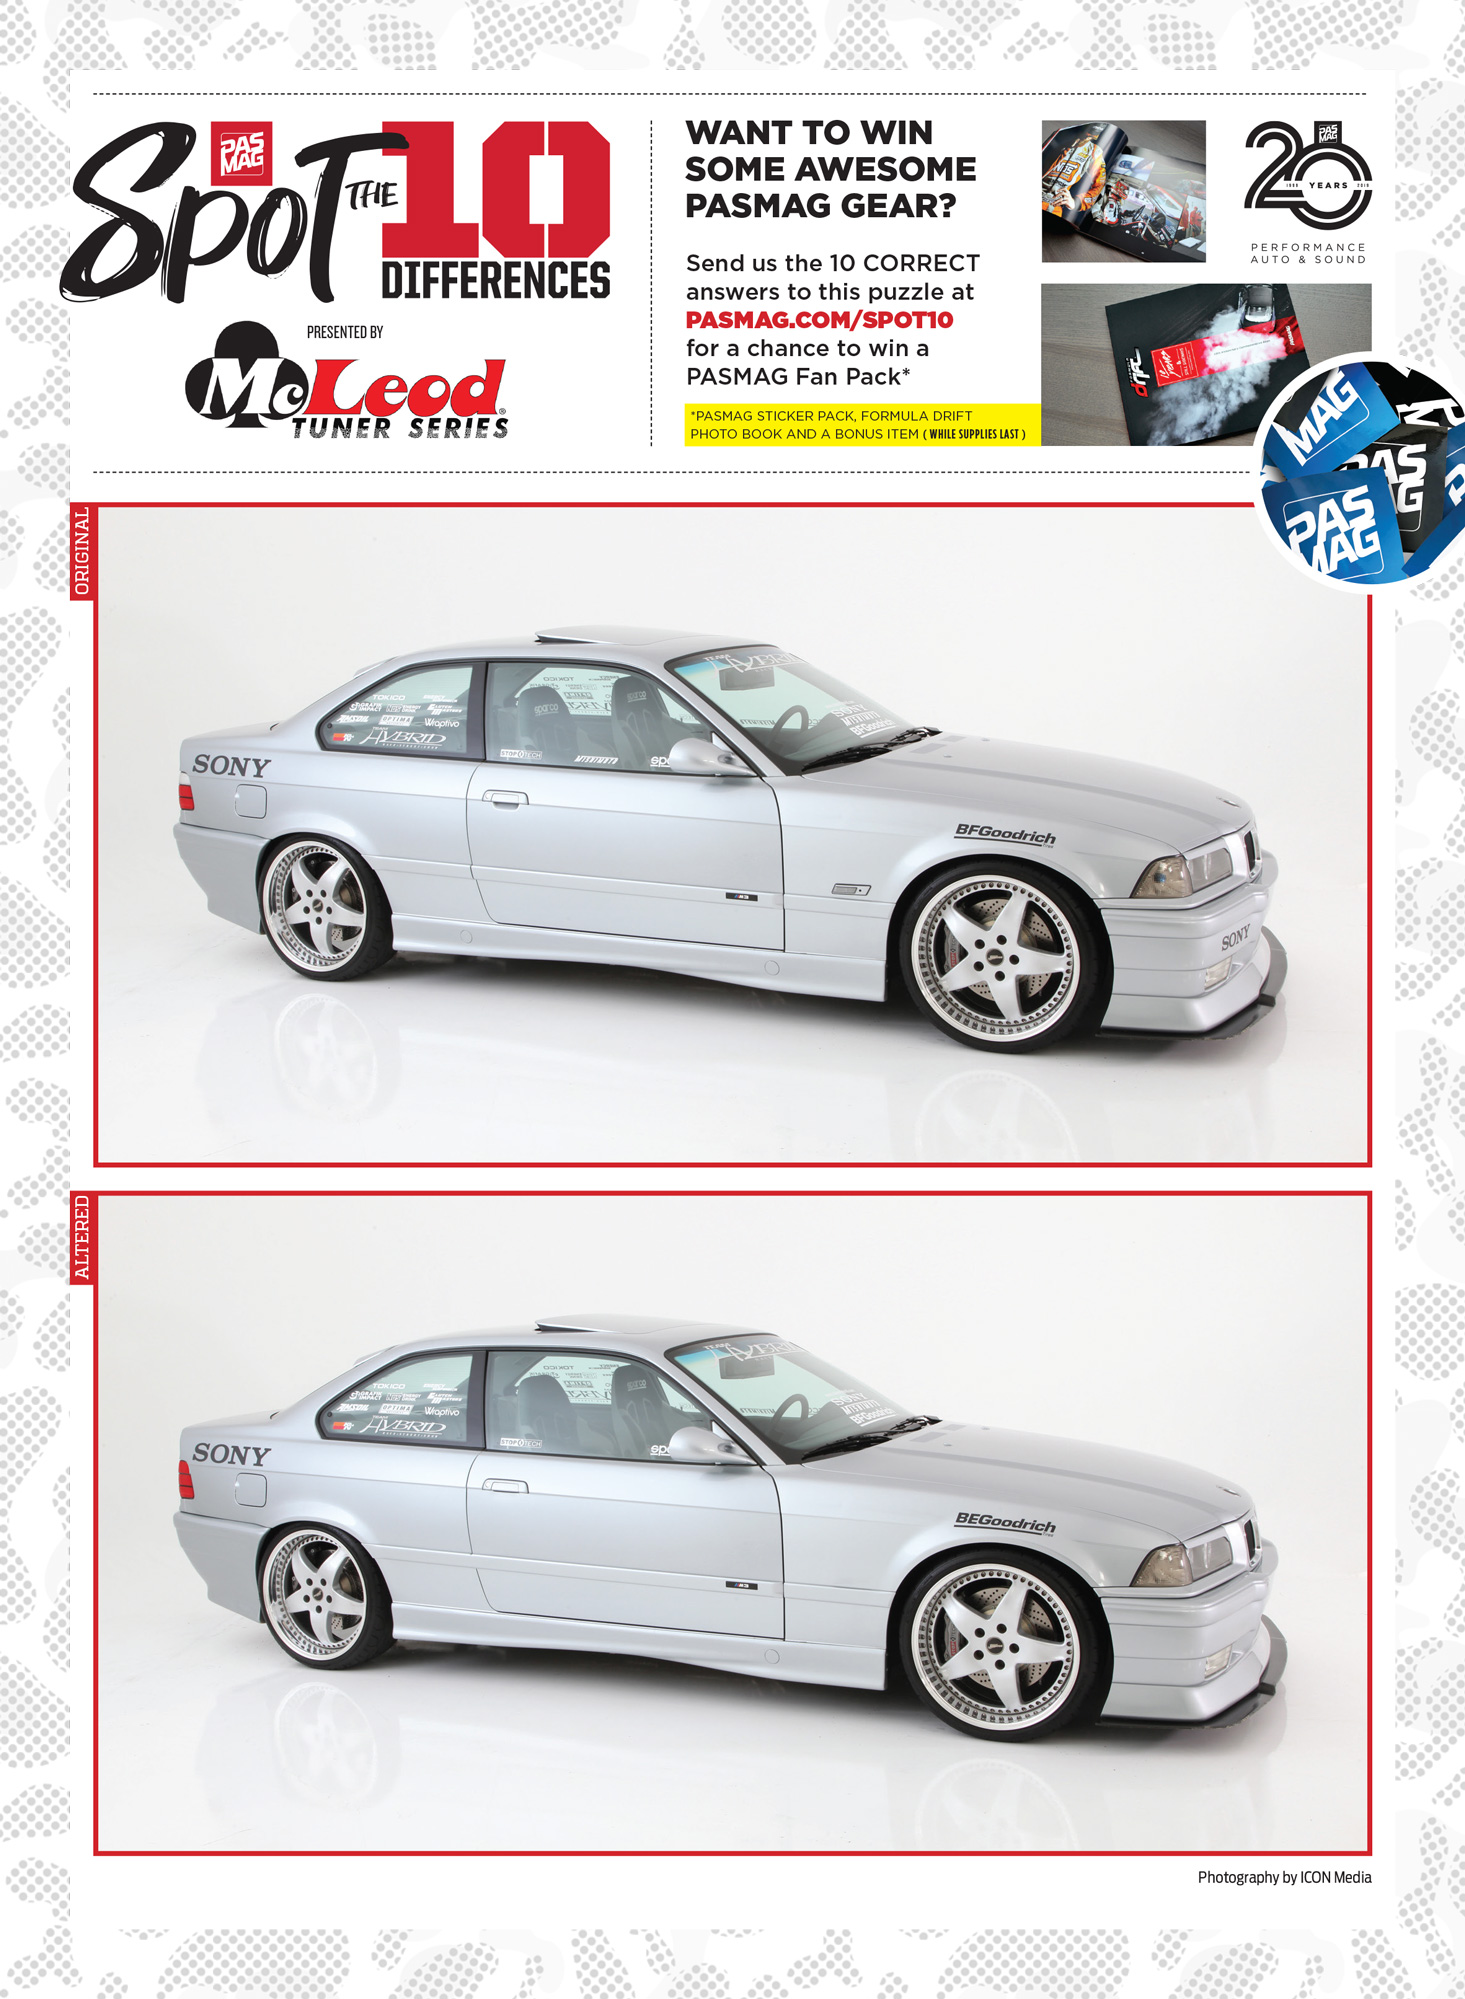 PASMAG Spot the Differences June 5 2020 James Lin Team Hybrid 1996 BMW 328i pasmag